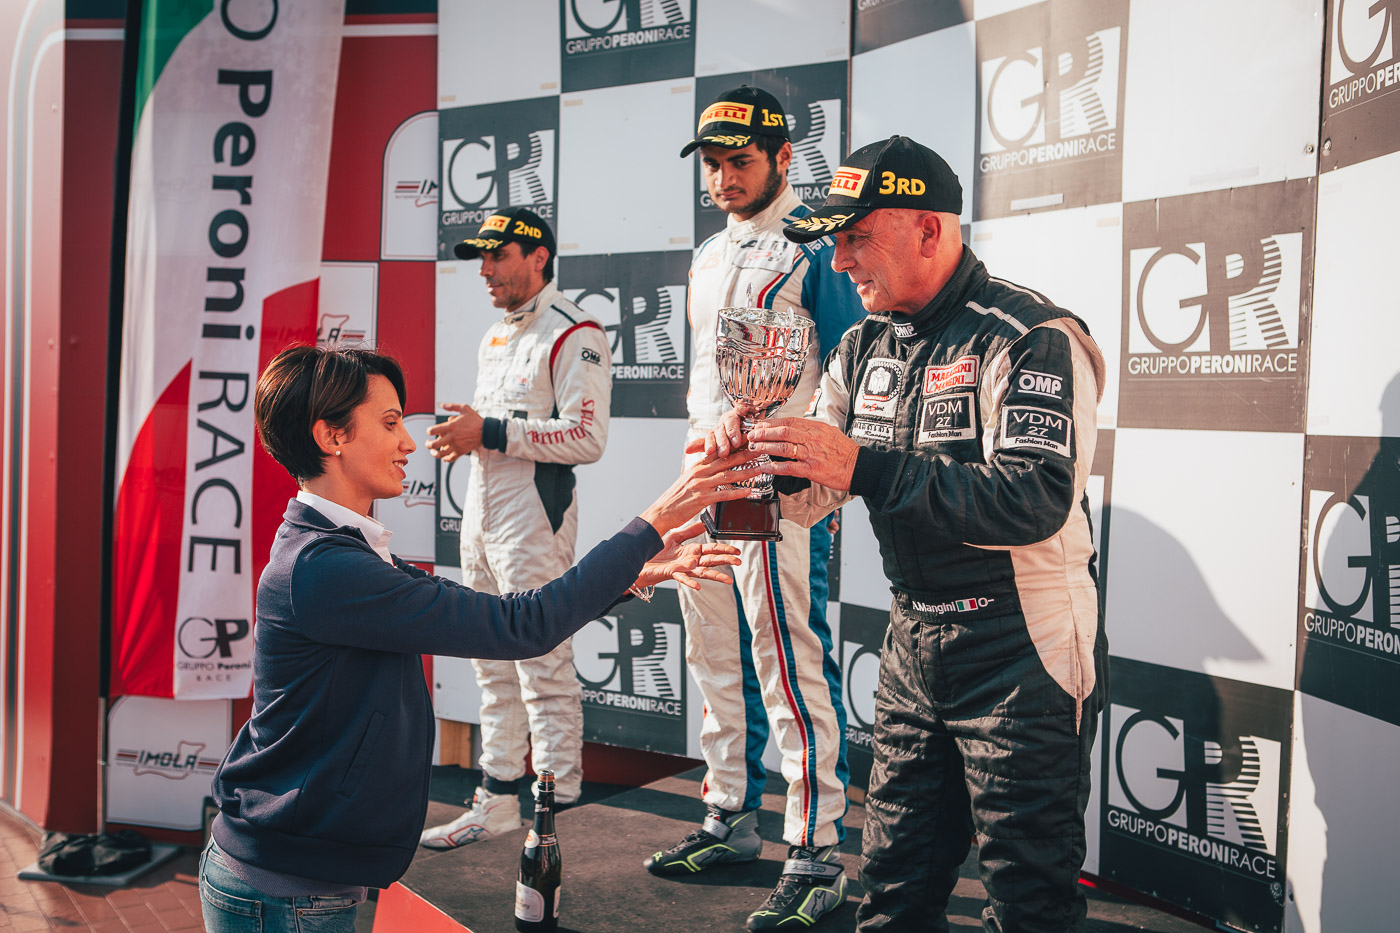 Podium ceremony of seasonrace 13 in Imola 2017.